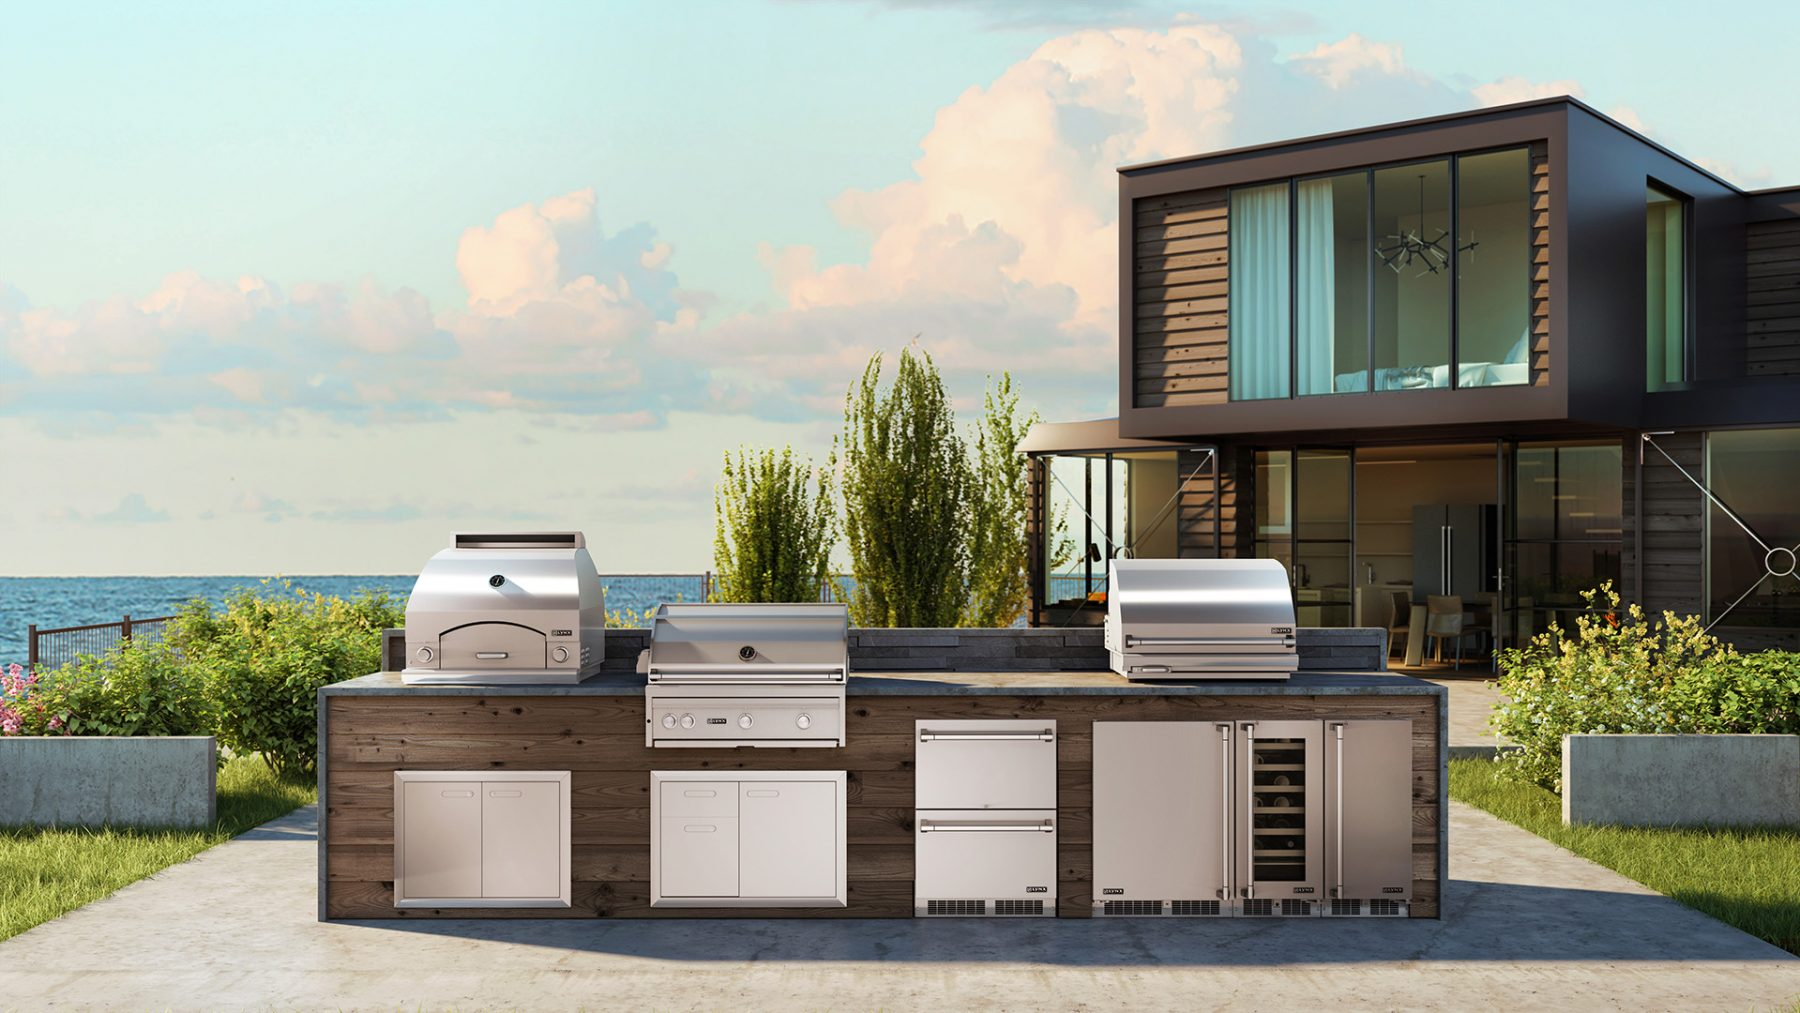 exterior design realistic outdoor grill setup